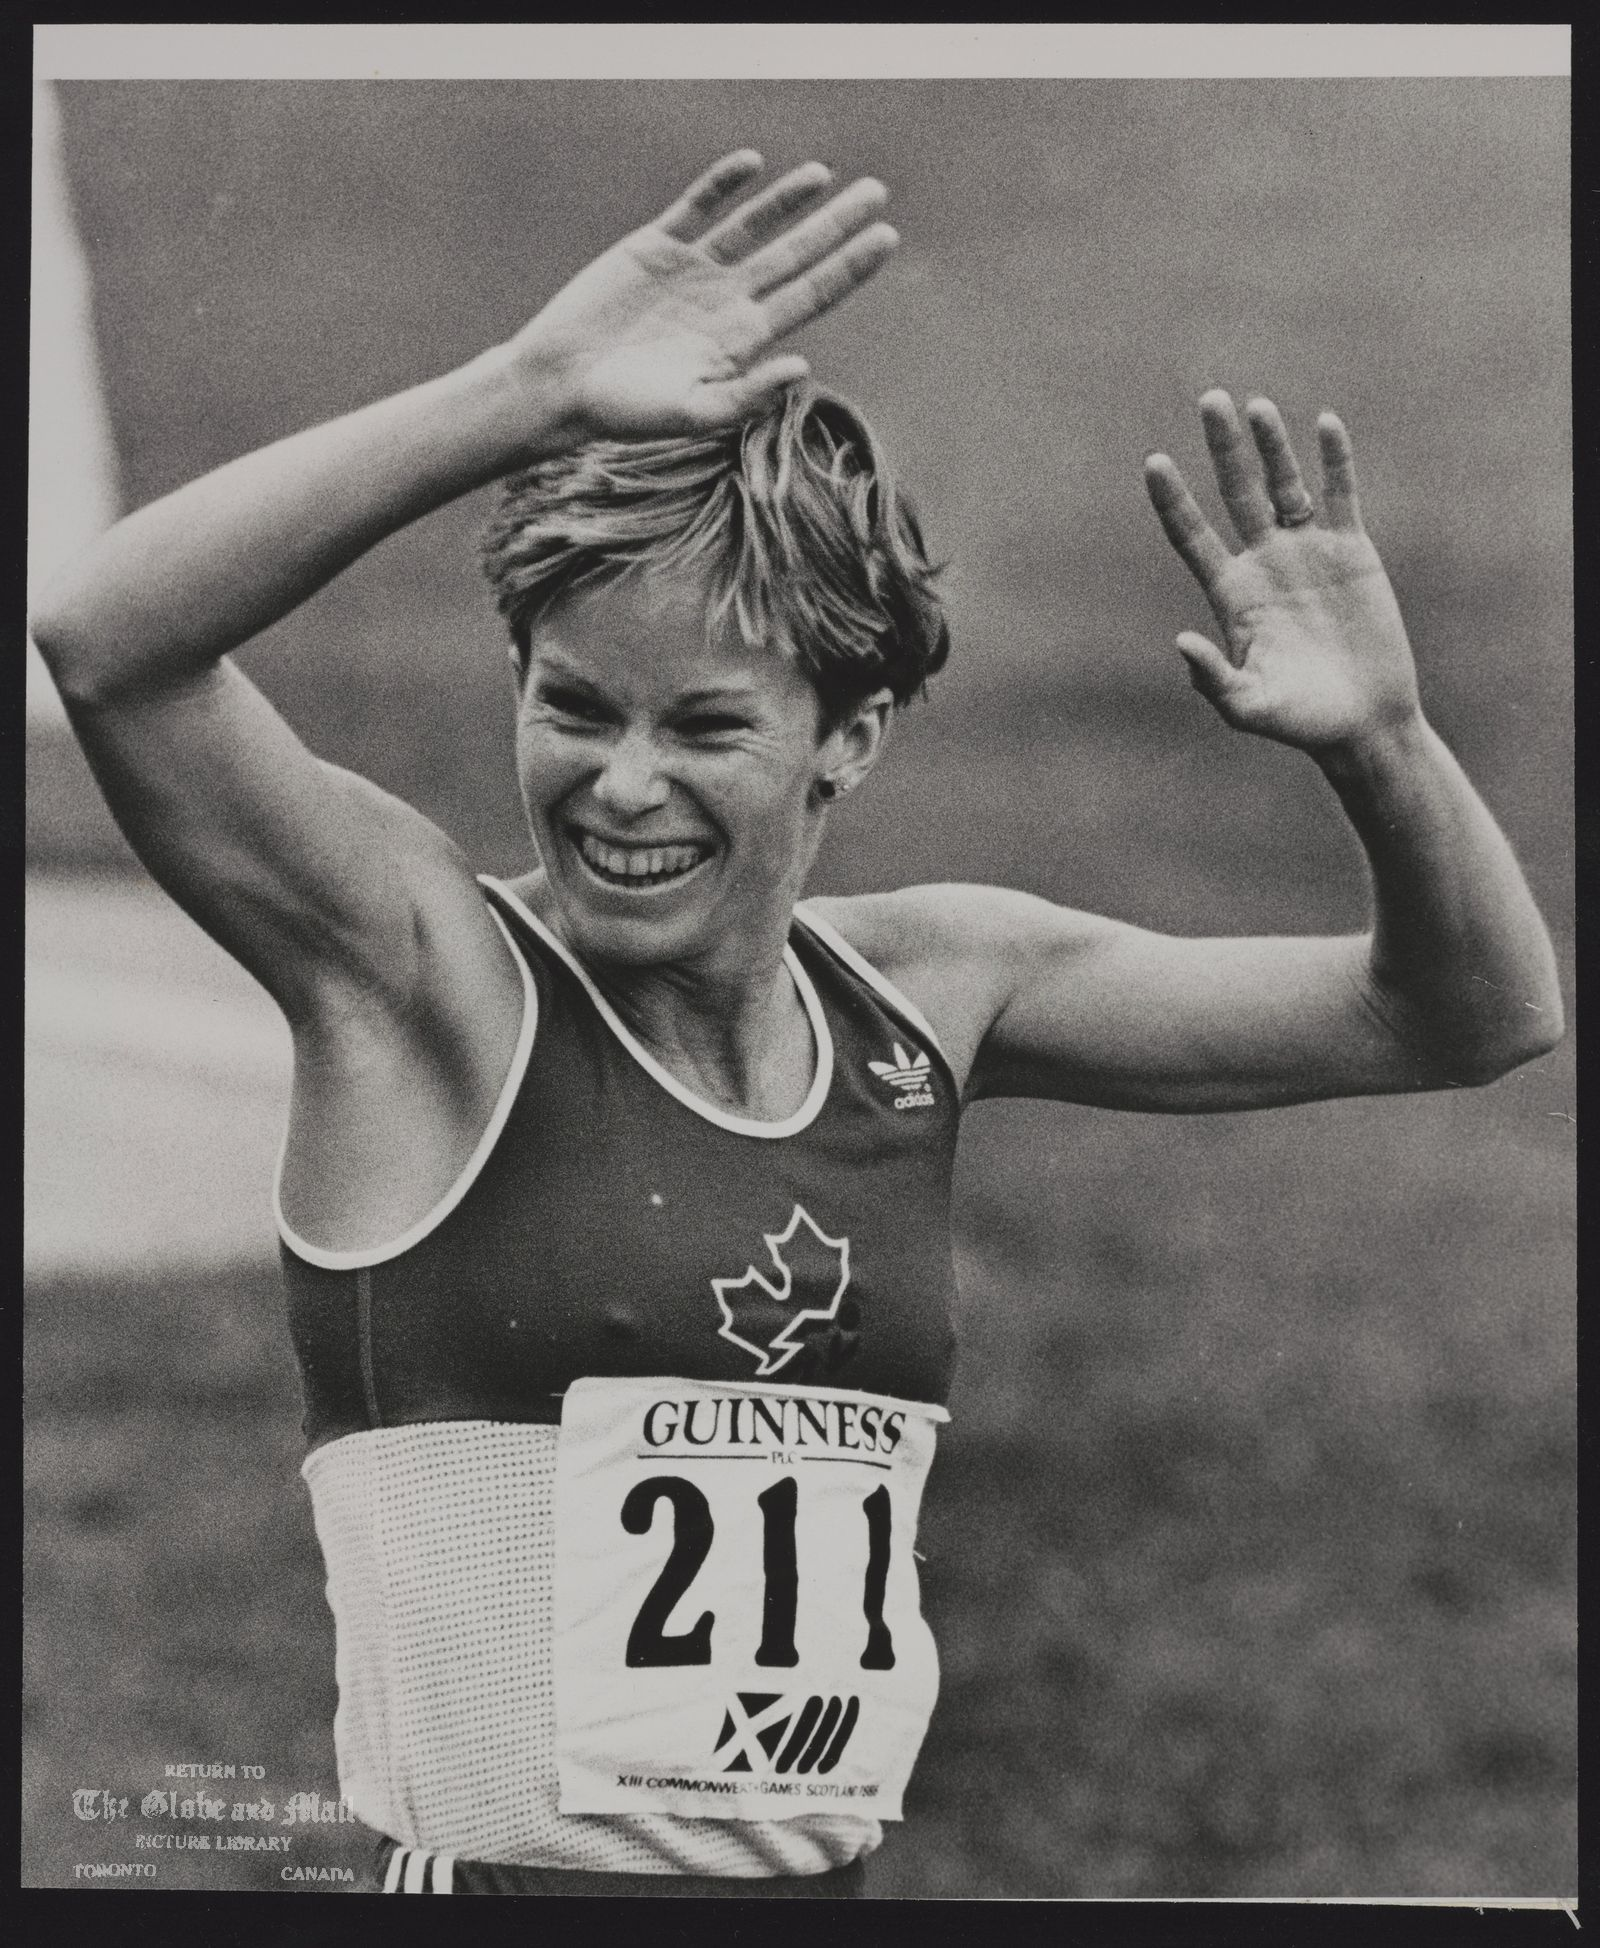 COMMONWEALTH GAMES EDINBURGH (1986) EDI19:SPECIAL FOR THE GLOBE AND MAIL, CANADA EDINBURGH, SCOTLAND, JULY 27-Lynn Williams of Vancouver raises her arms in jubilation after winning the Women's 3000m for another Canadian Gold medal. hd/Hans Deryk